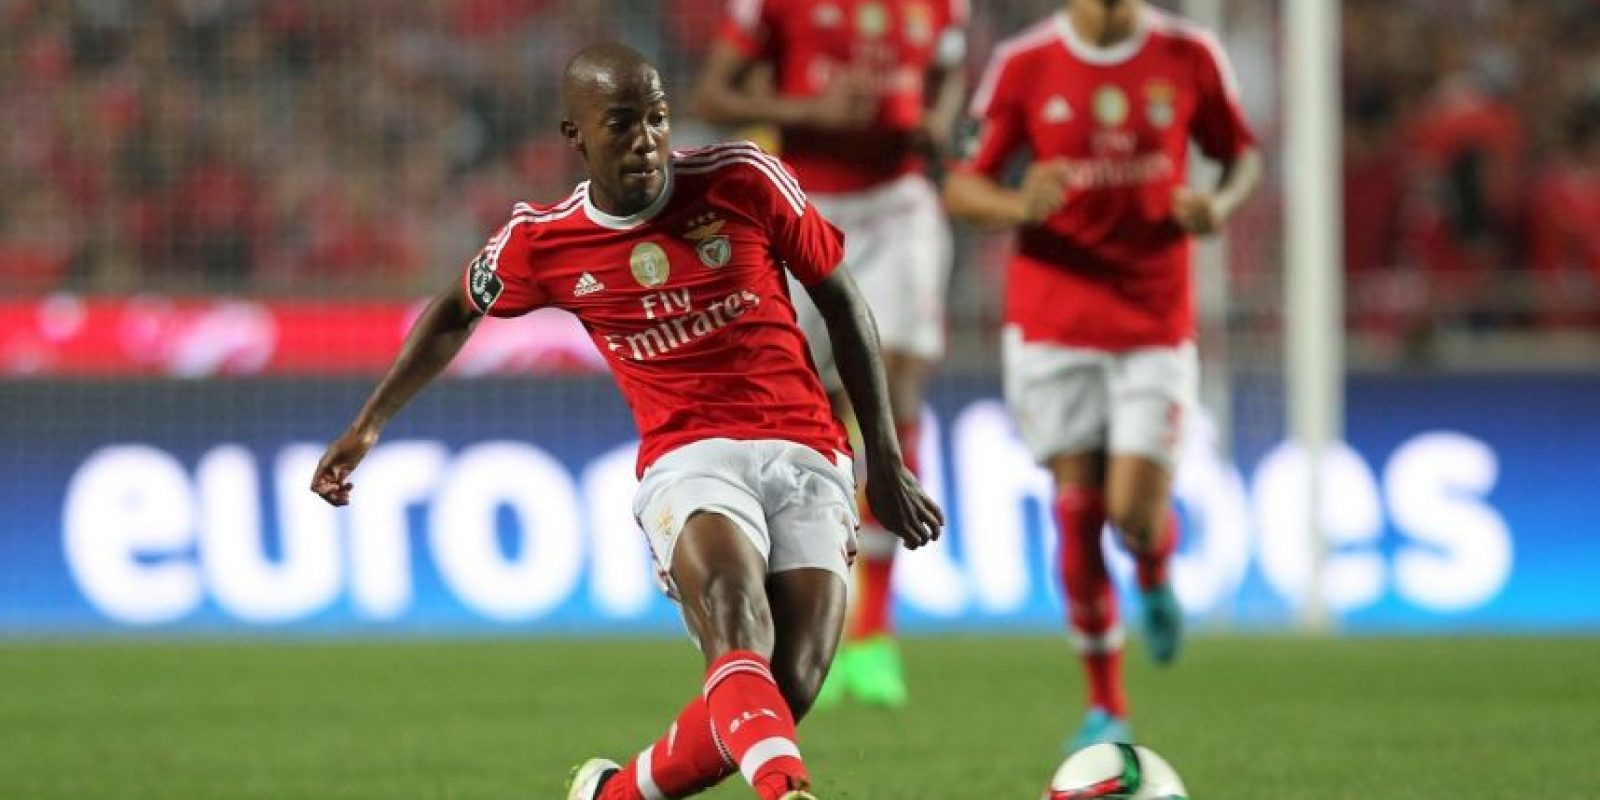 Benfica (Portugal) Foto:Getty Images